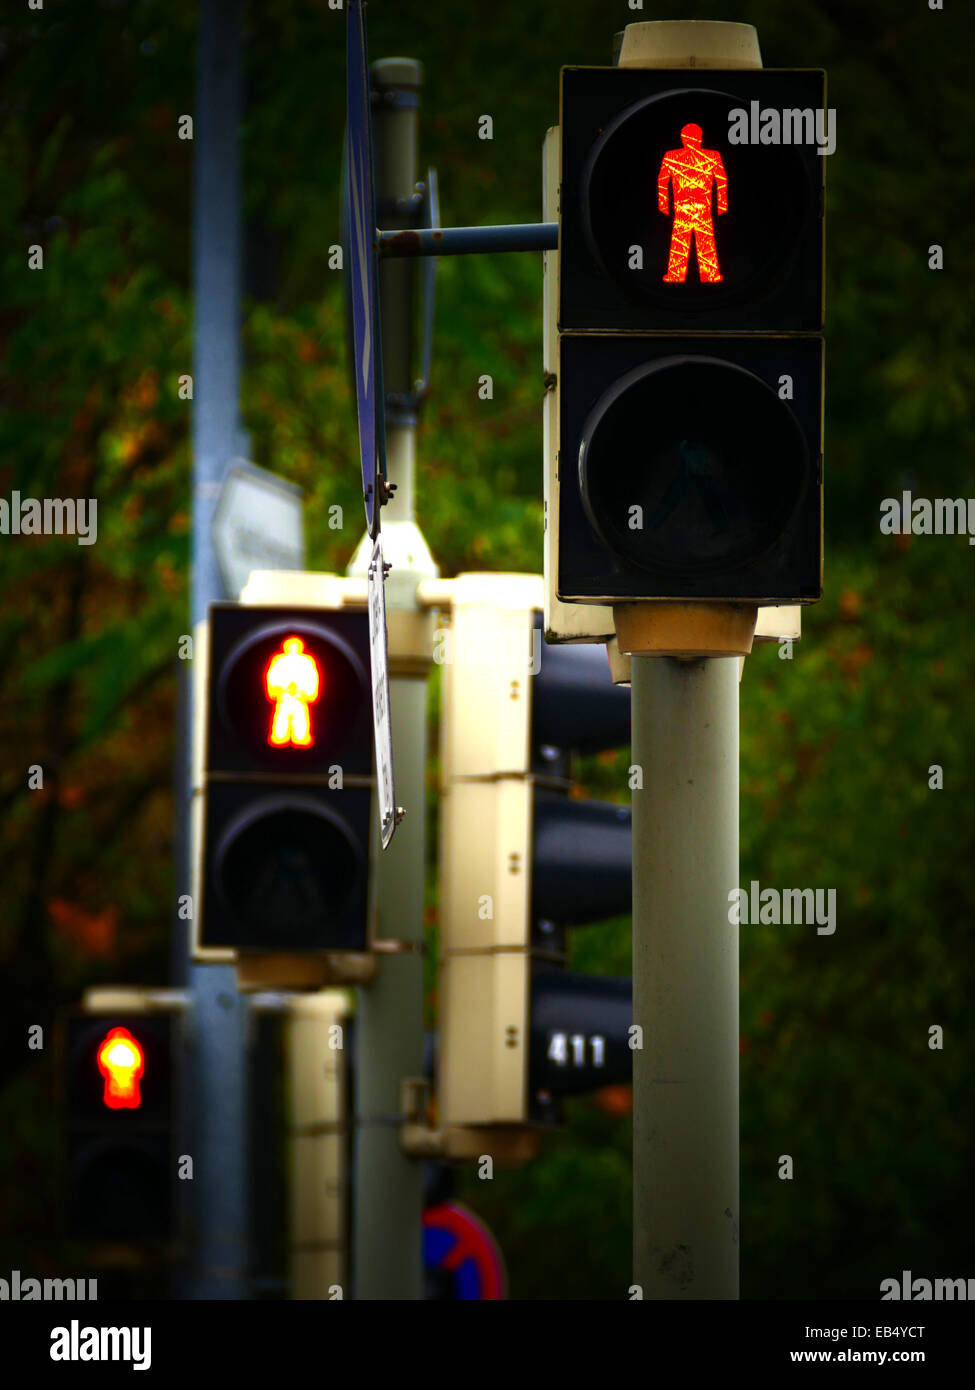 3 Traffic lights in a roll Red Green - Stock Image